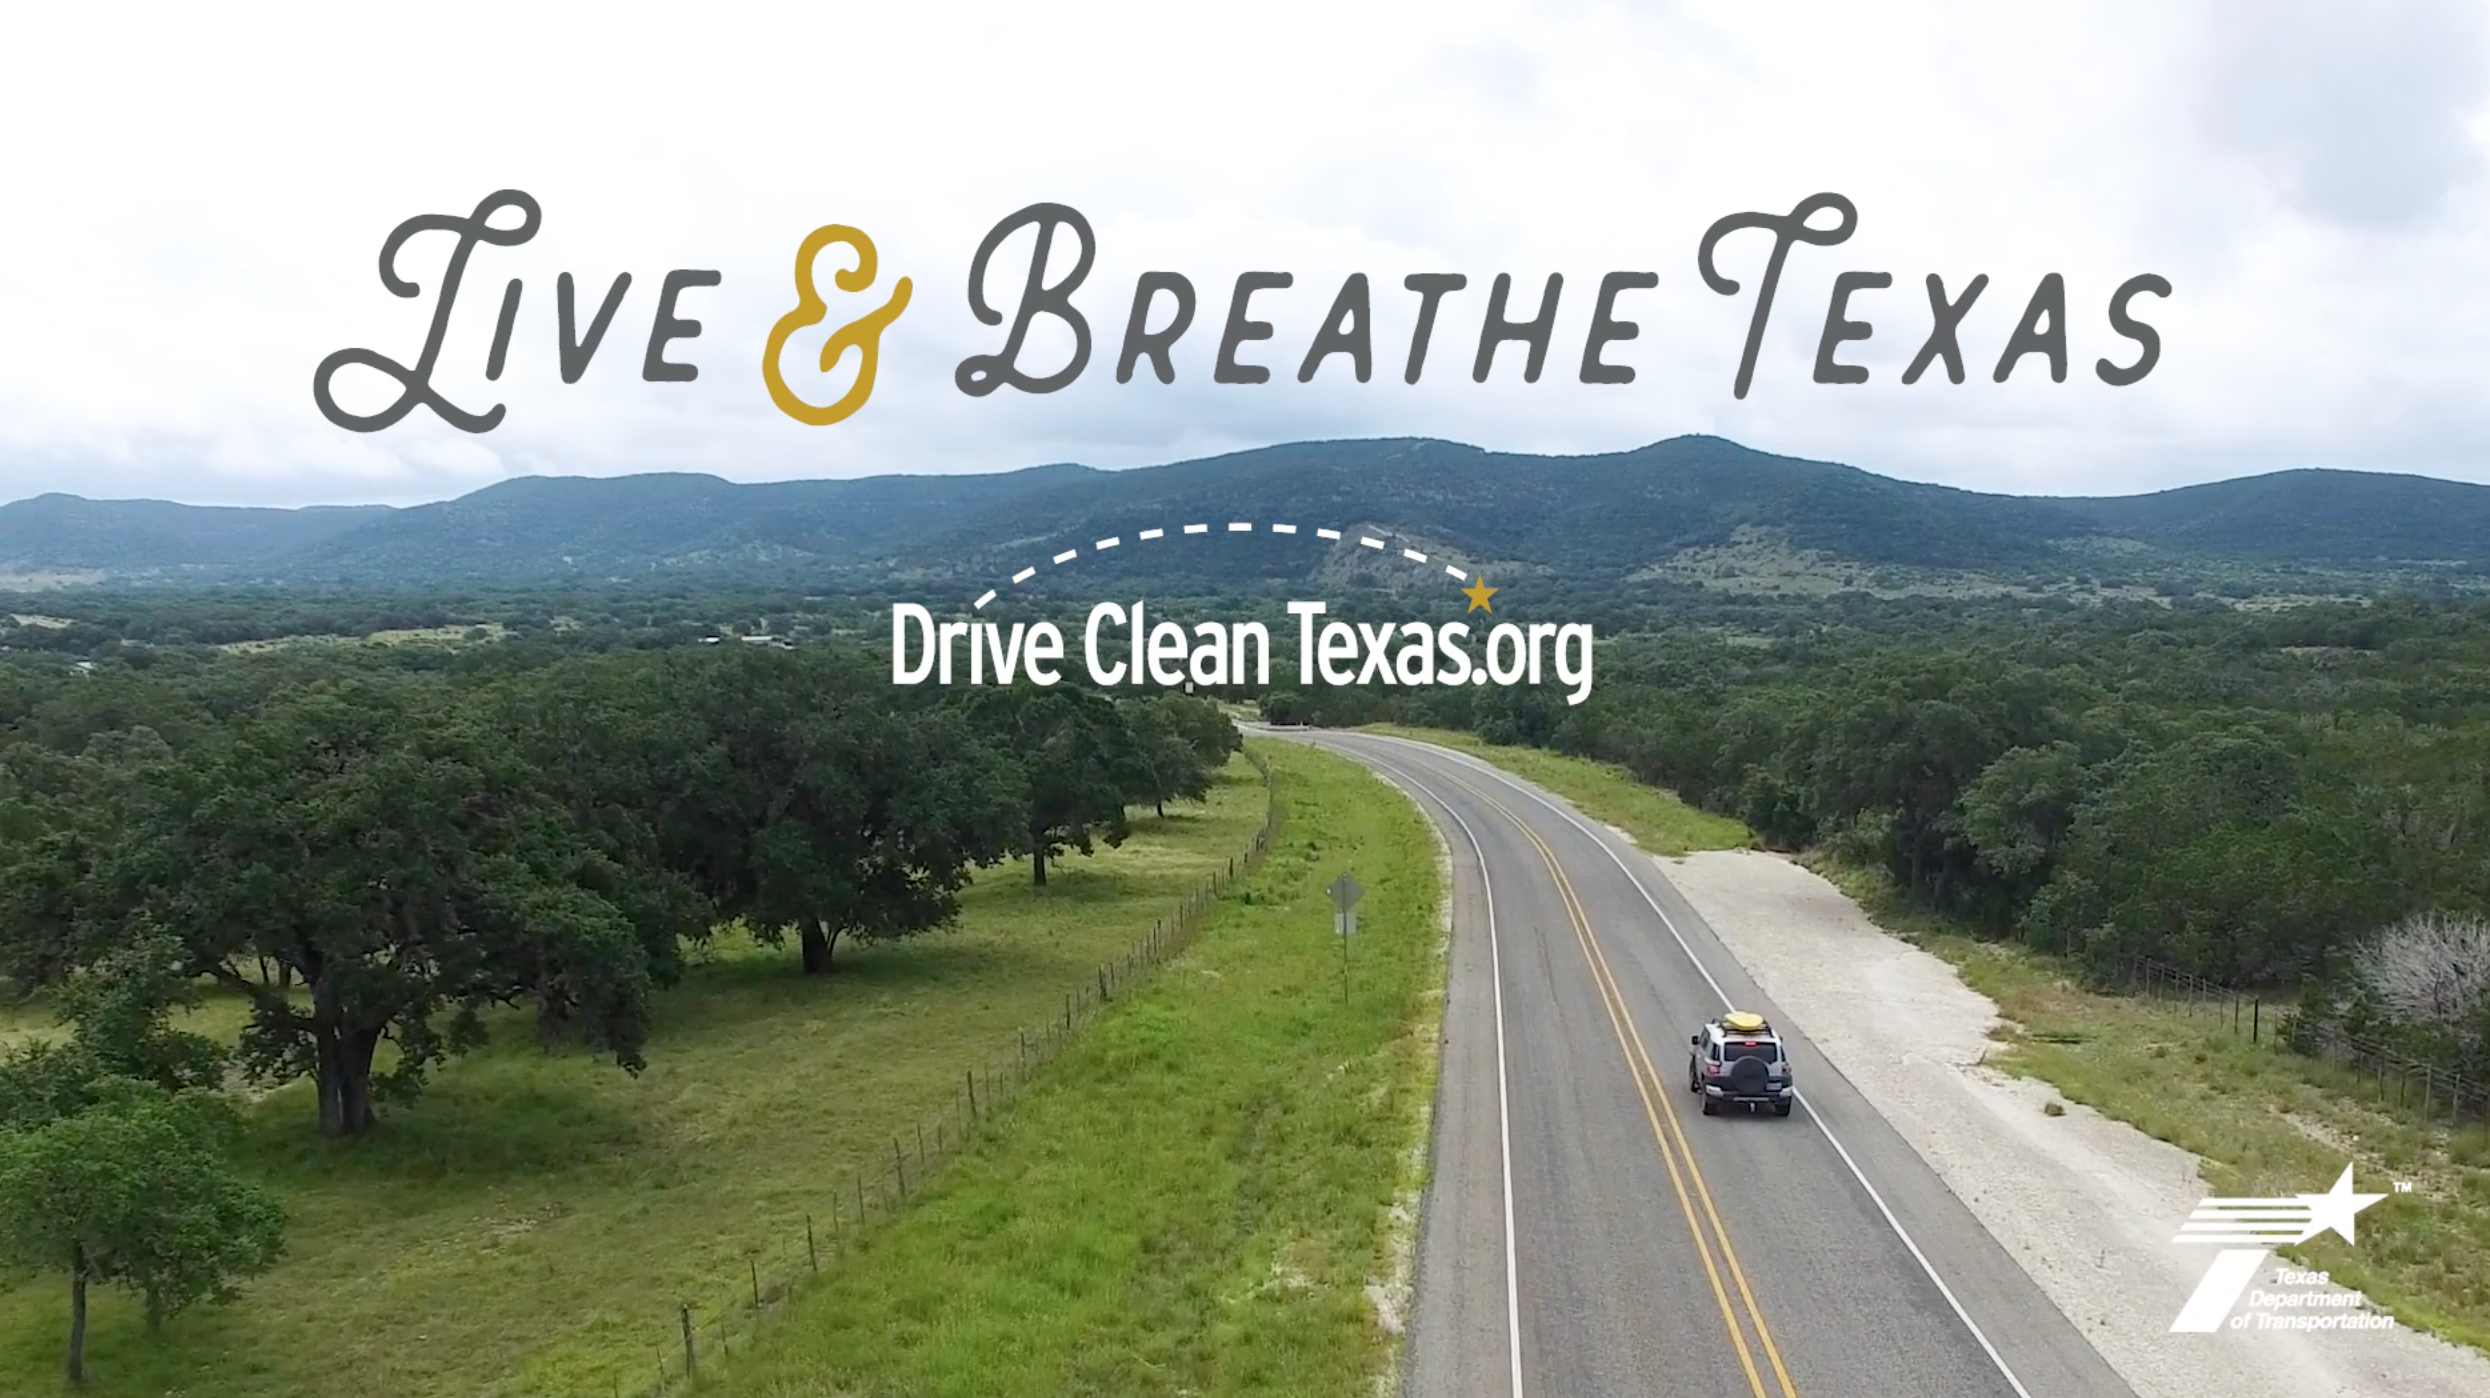 Copy of Copy of Drive Clean Texas